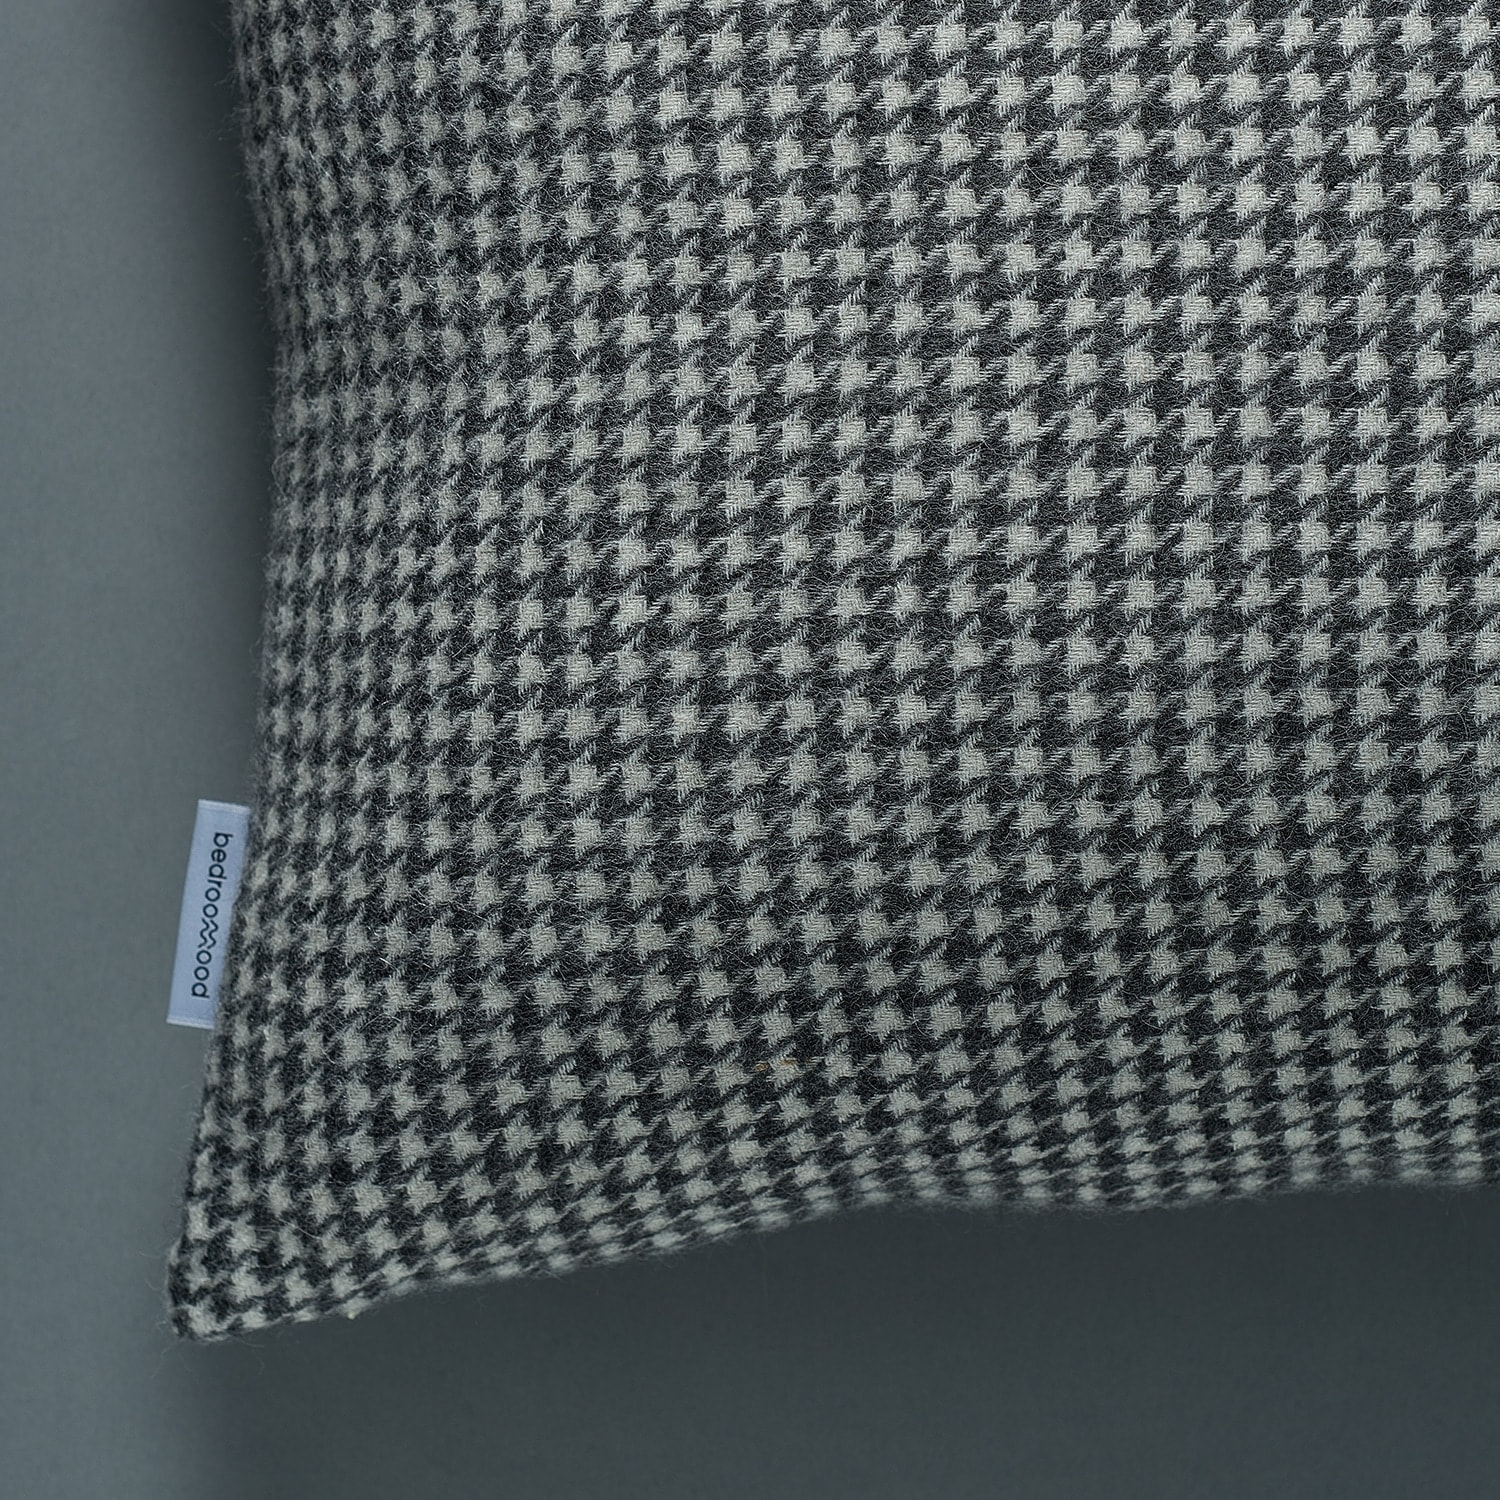 Decorative cushion (Houndstooth weave)  - White & Grey